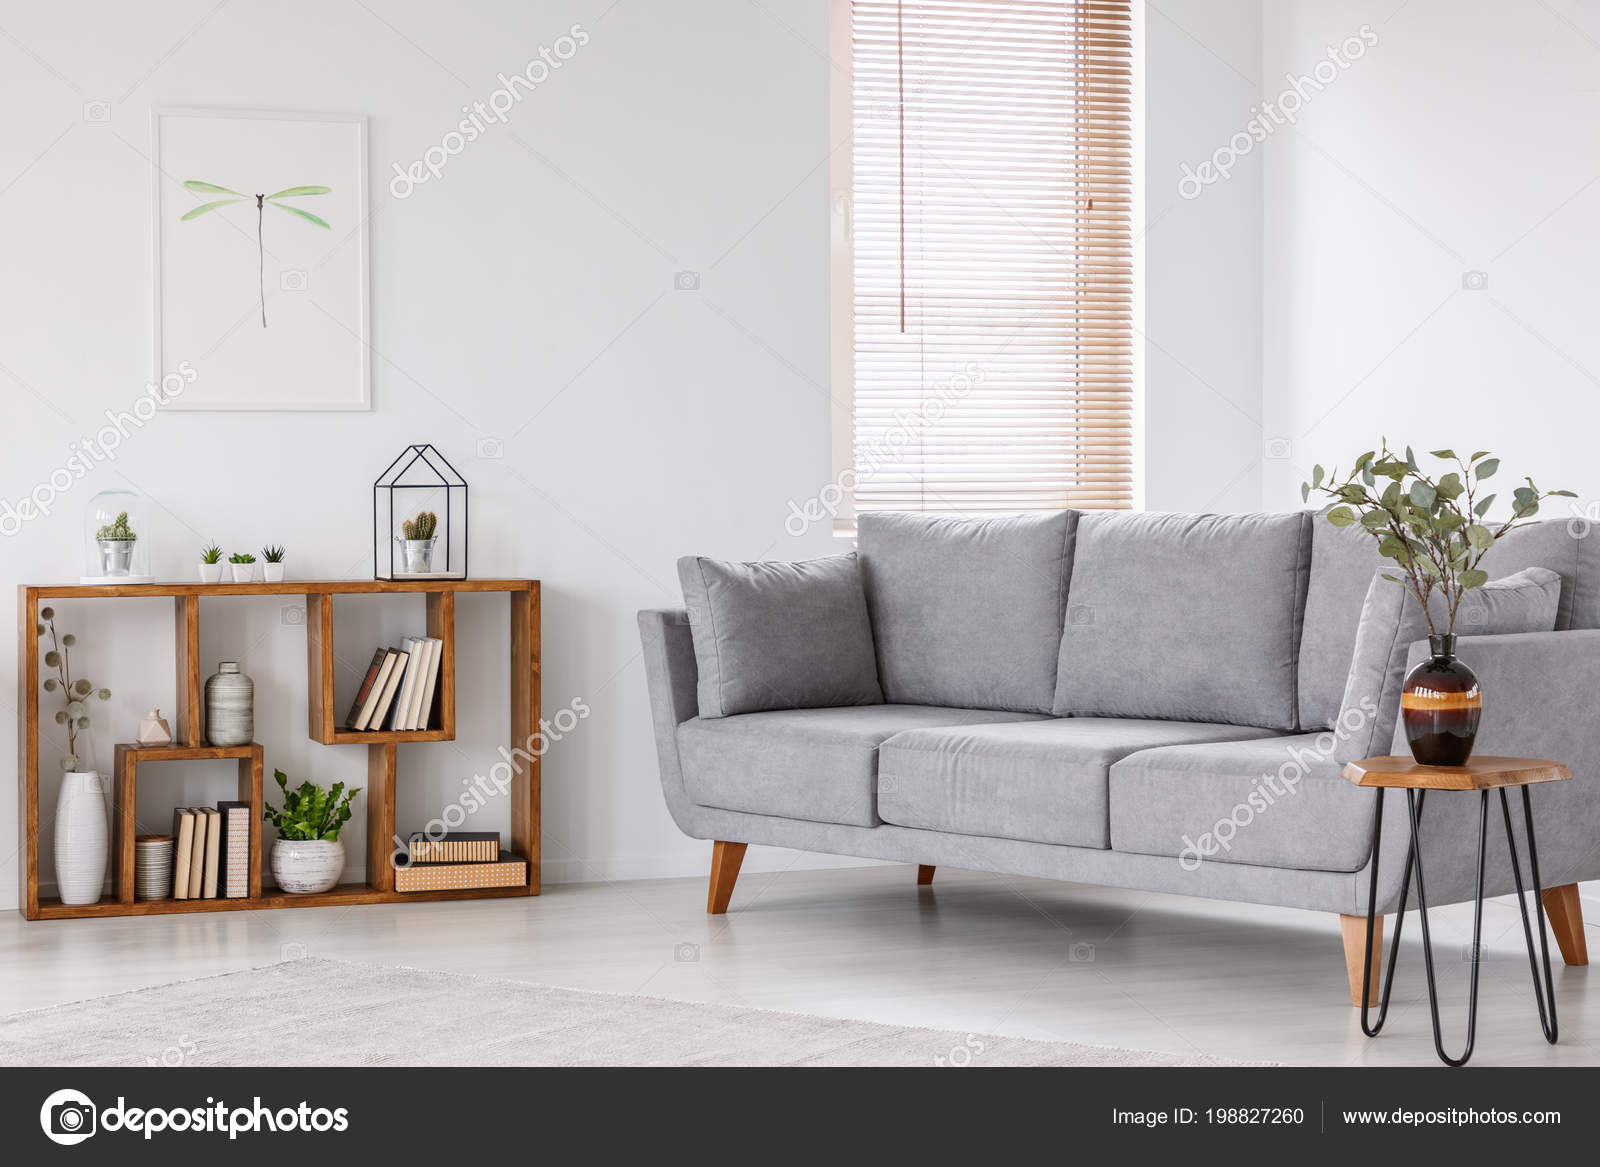 Swell Plant Wooden Table Next Grey Sofa Natural Living Room Uwap Interior Chair Design Uwaporg